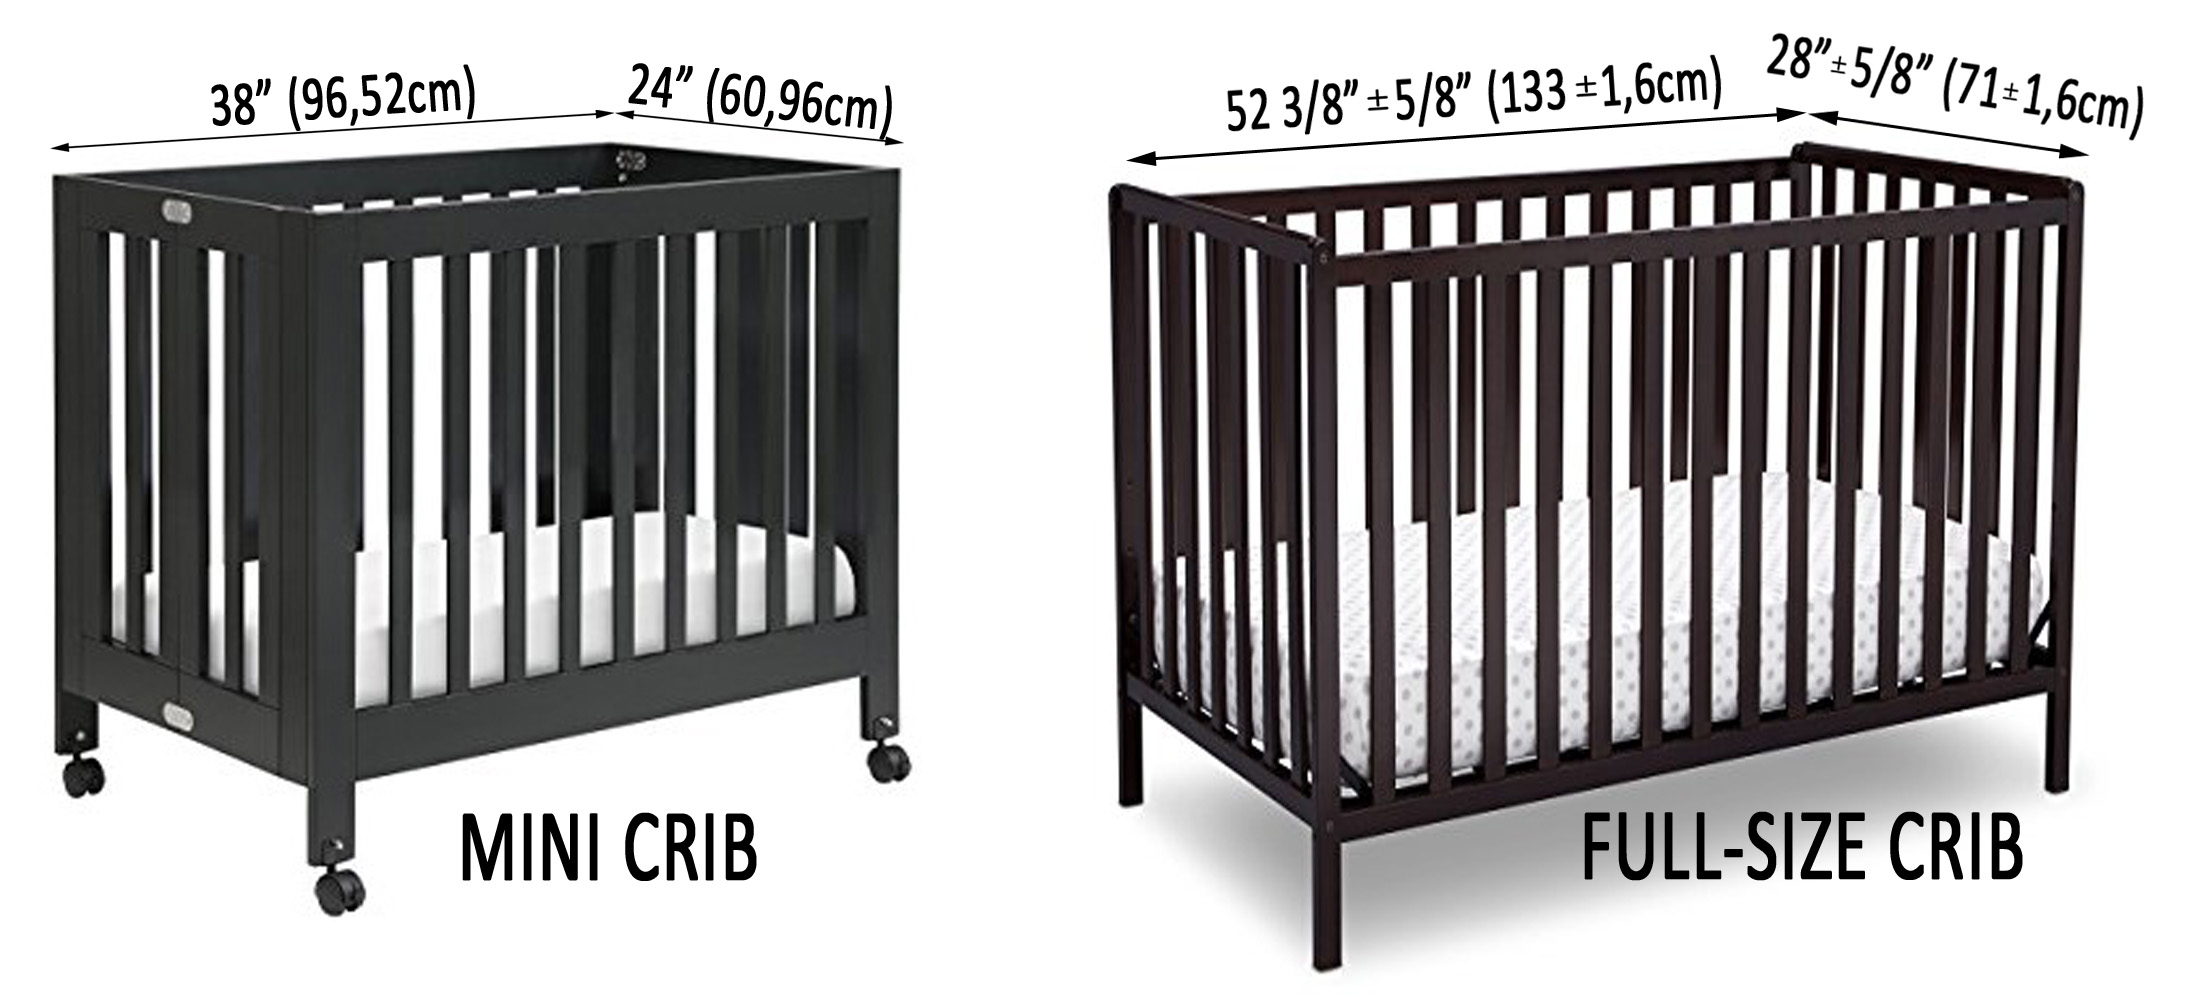 Mini Crib Vs Standard Crib What Is The Difference In Size